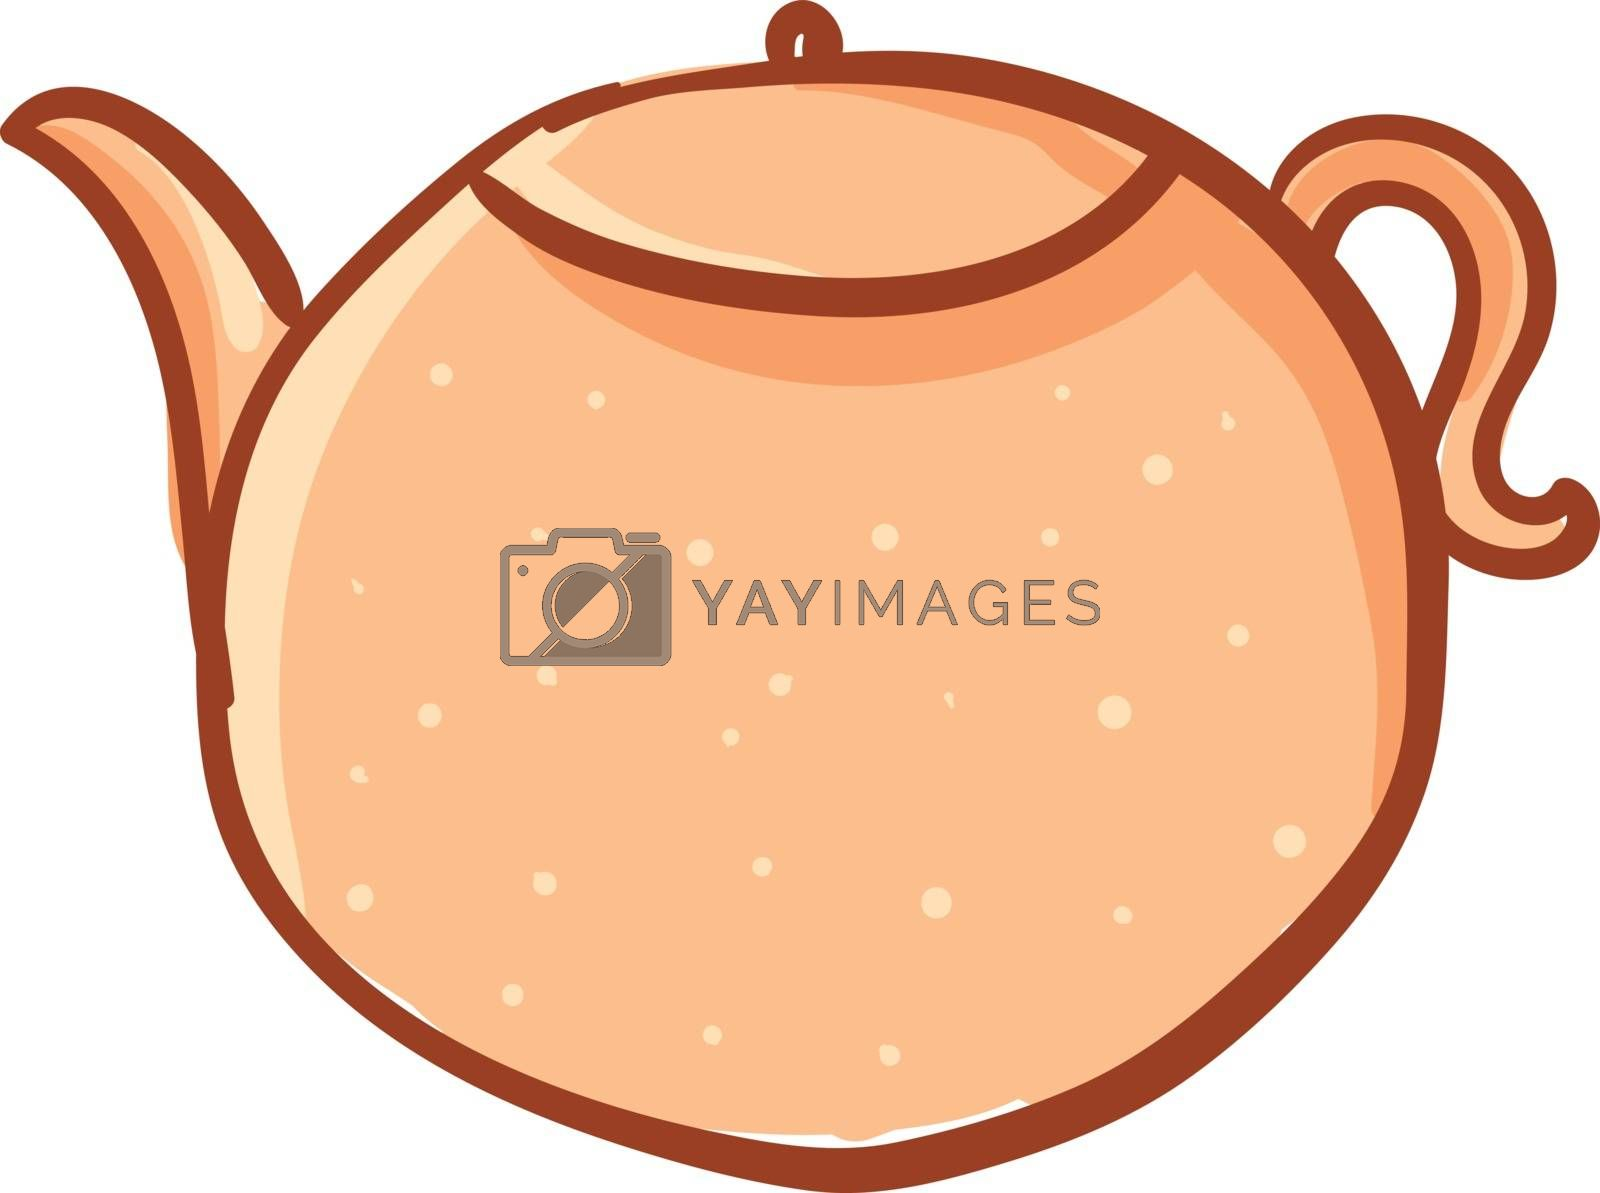 Royalty free image of Clipart of a round-shaped teapot/Kettle/Evening snacks time vect by Morphart